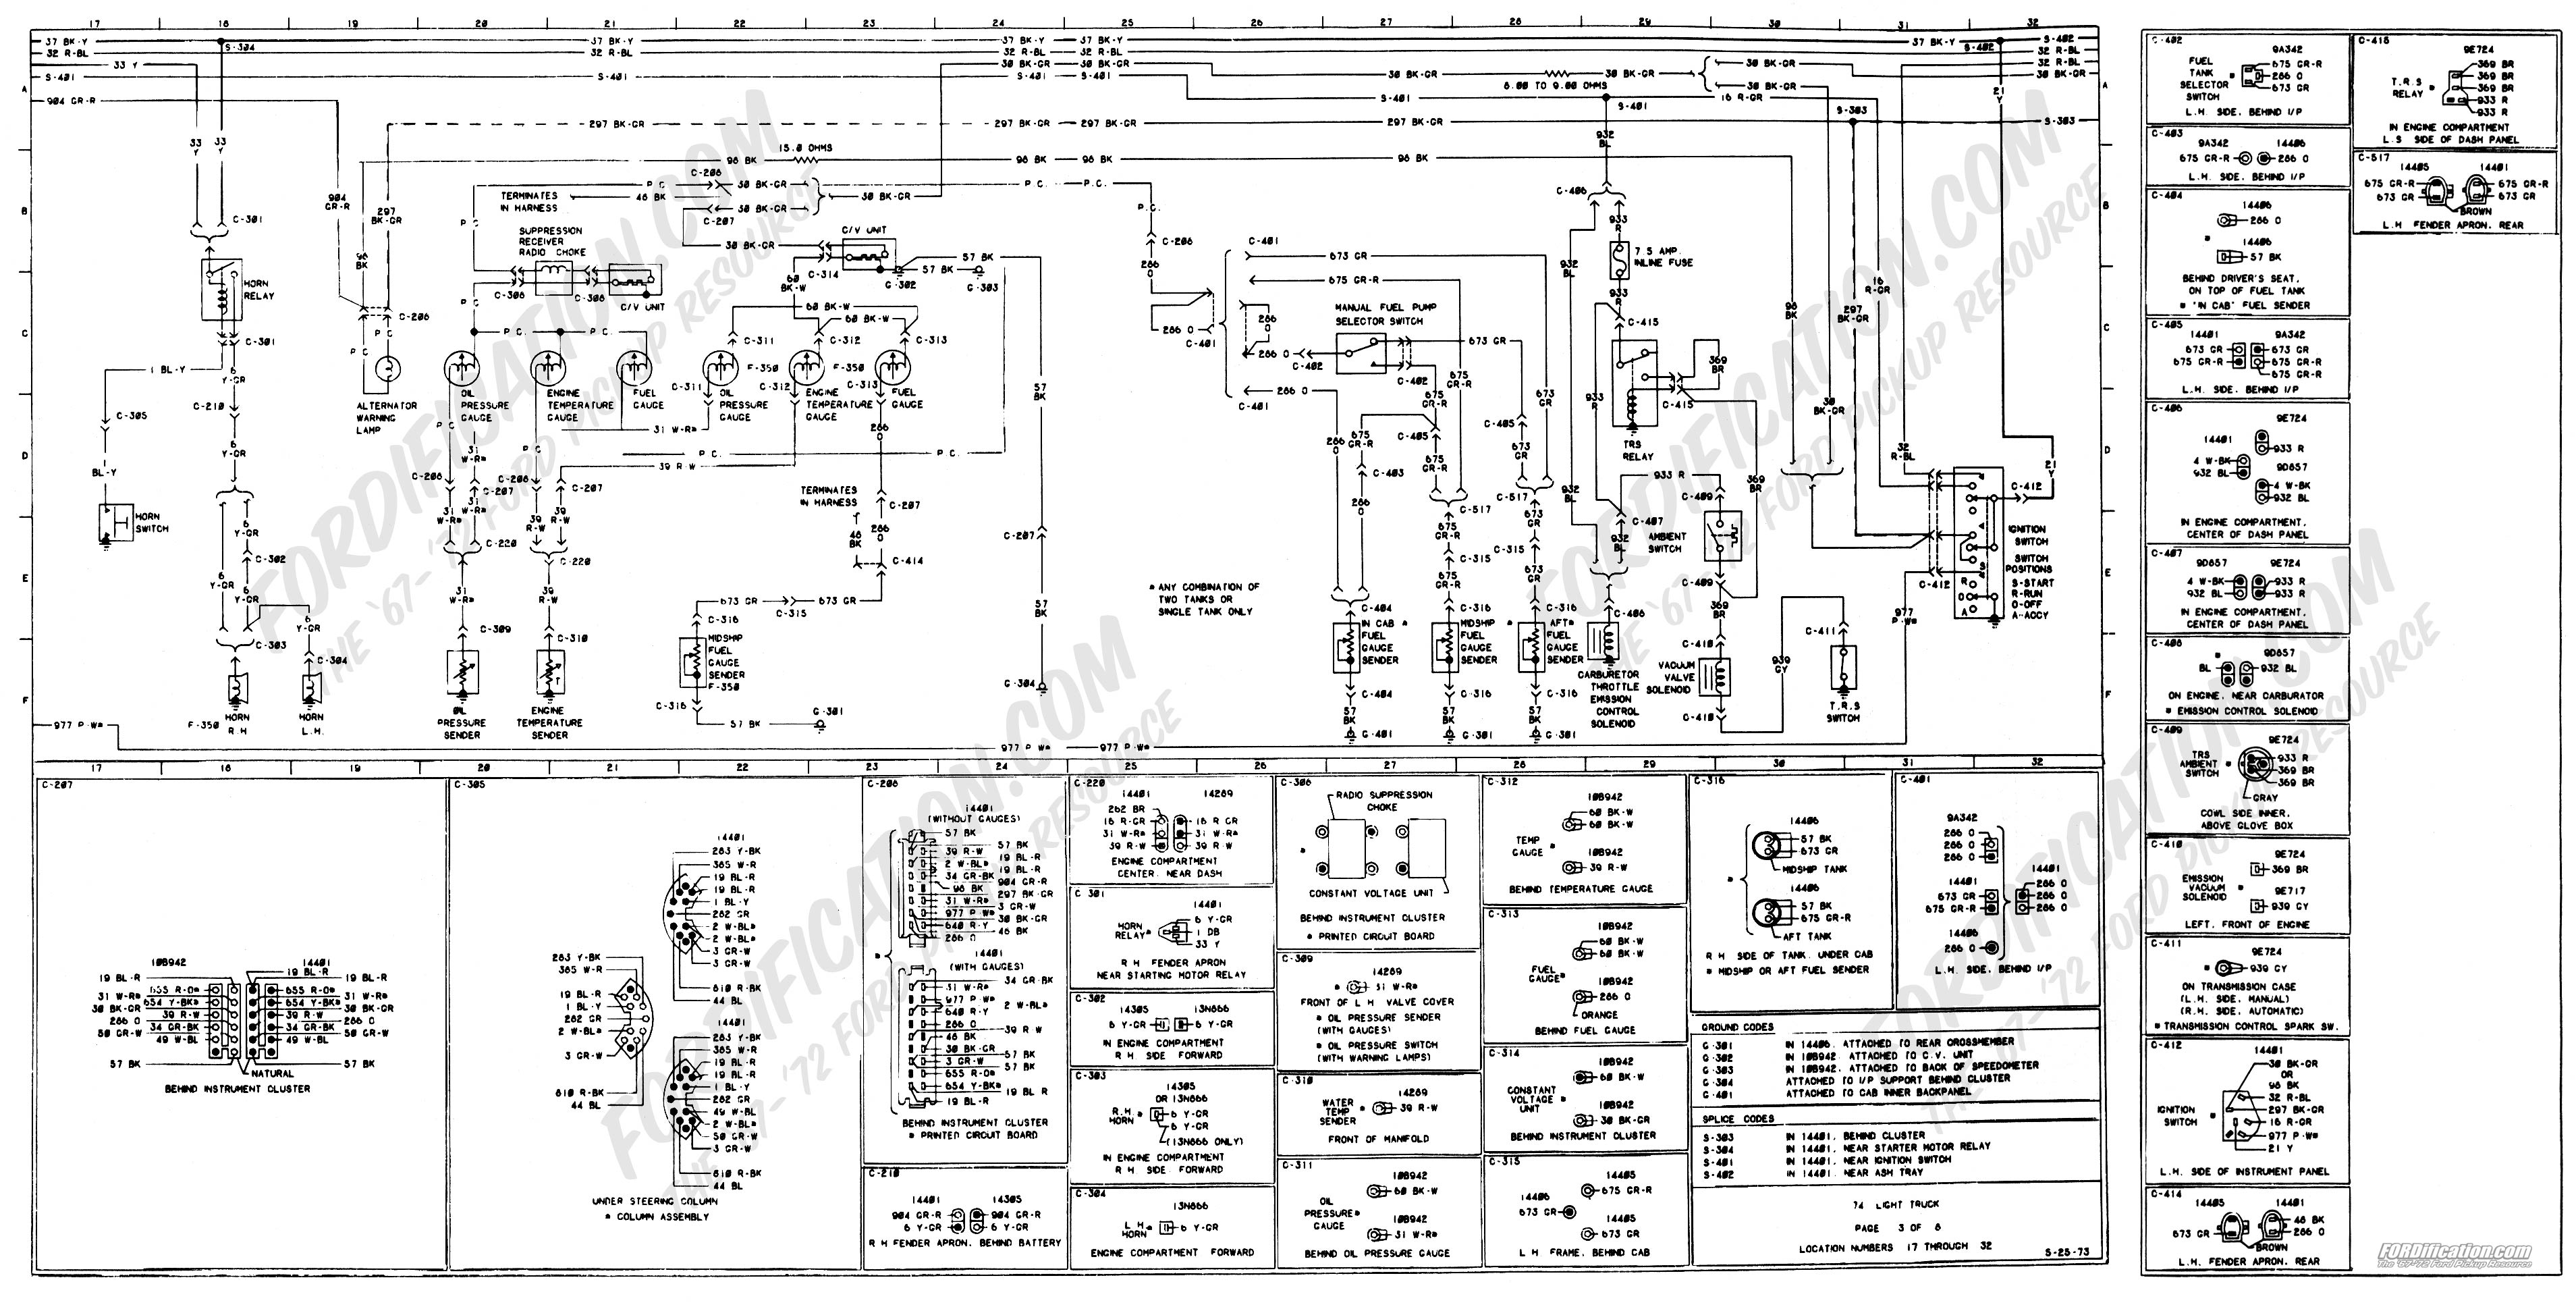 Bronco Ecm Wiring Diagram Strategy Design Plan Gm Schematic 1973 1979 Ford Truck Diagrams Schematics Fordification Net Rh Cummins M11 Factory